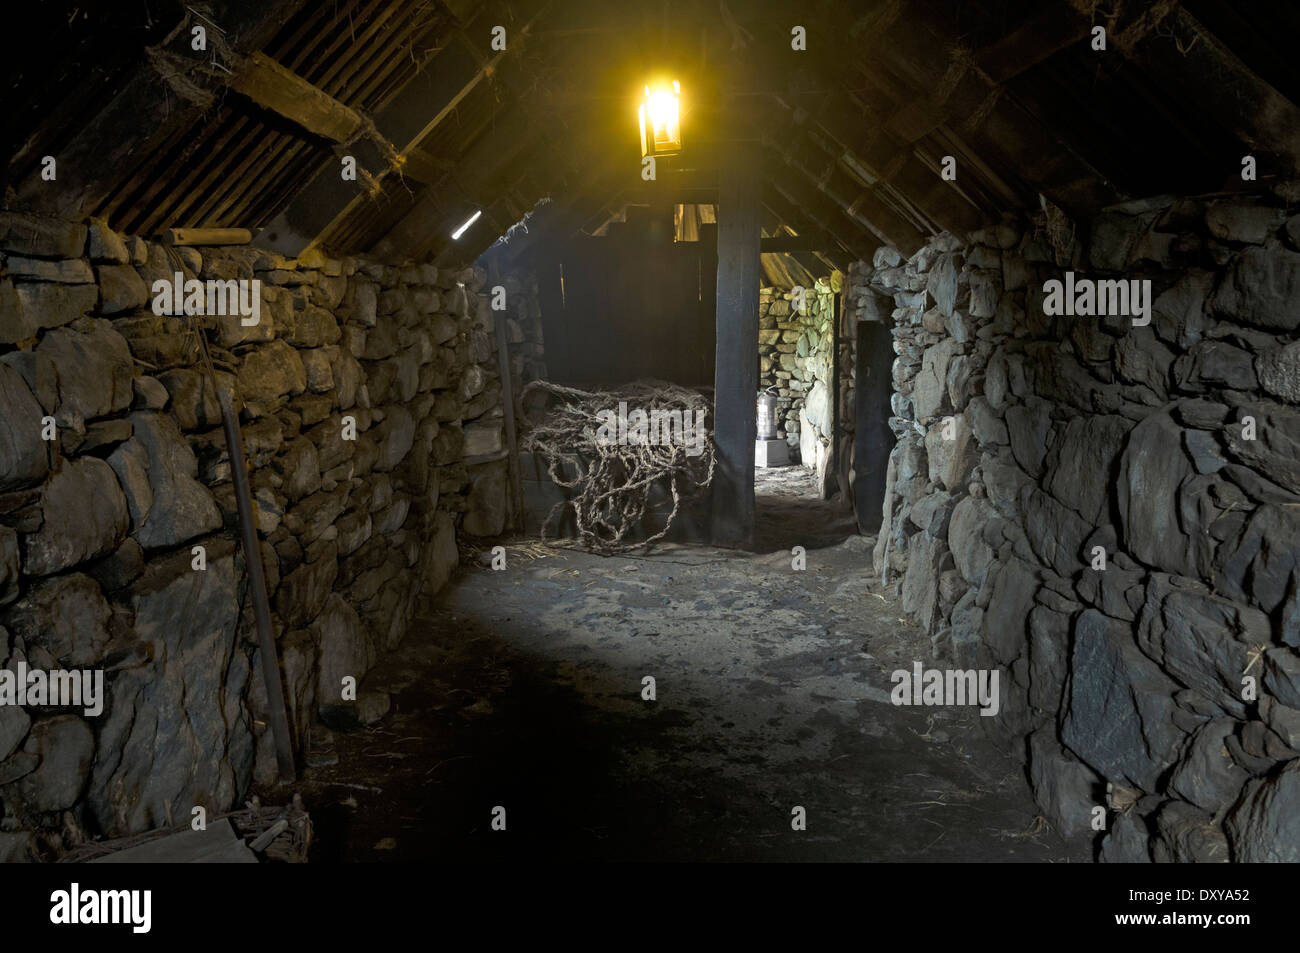 The Barn Inside Blackhouse At Arnol Isle Of Lewis Western Isles Scotland UK